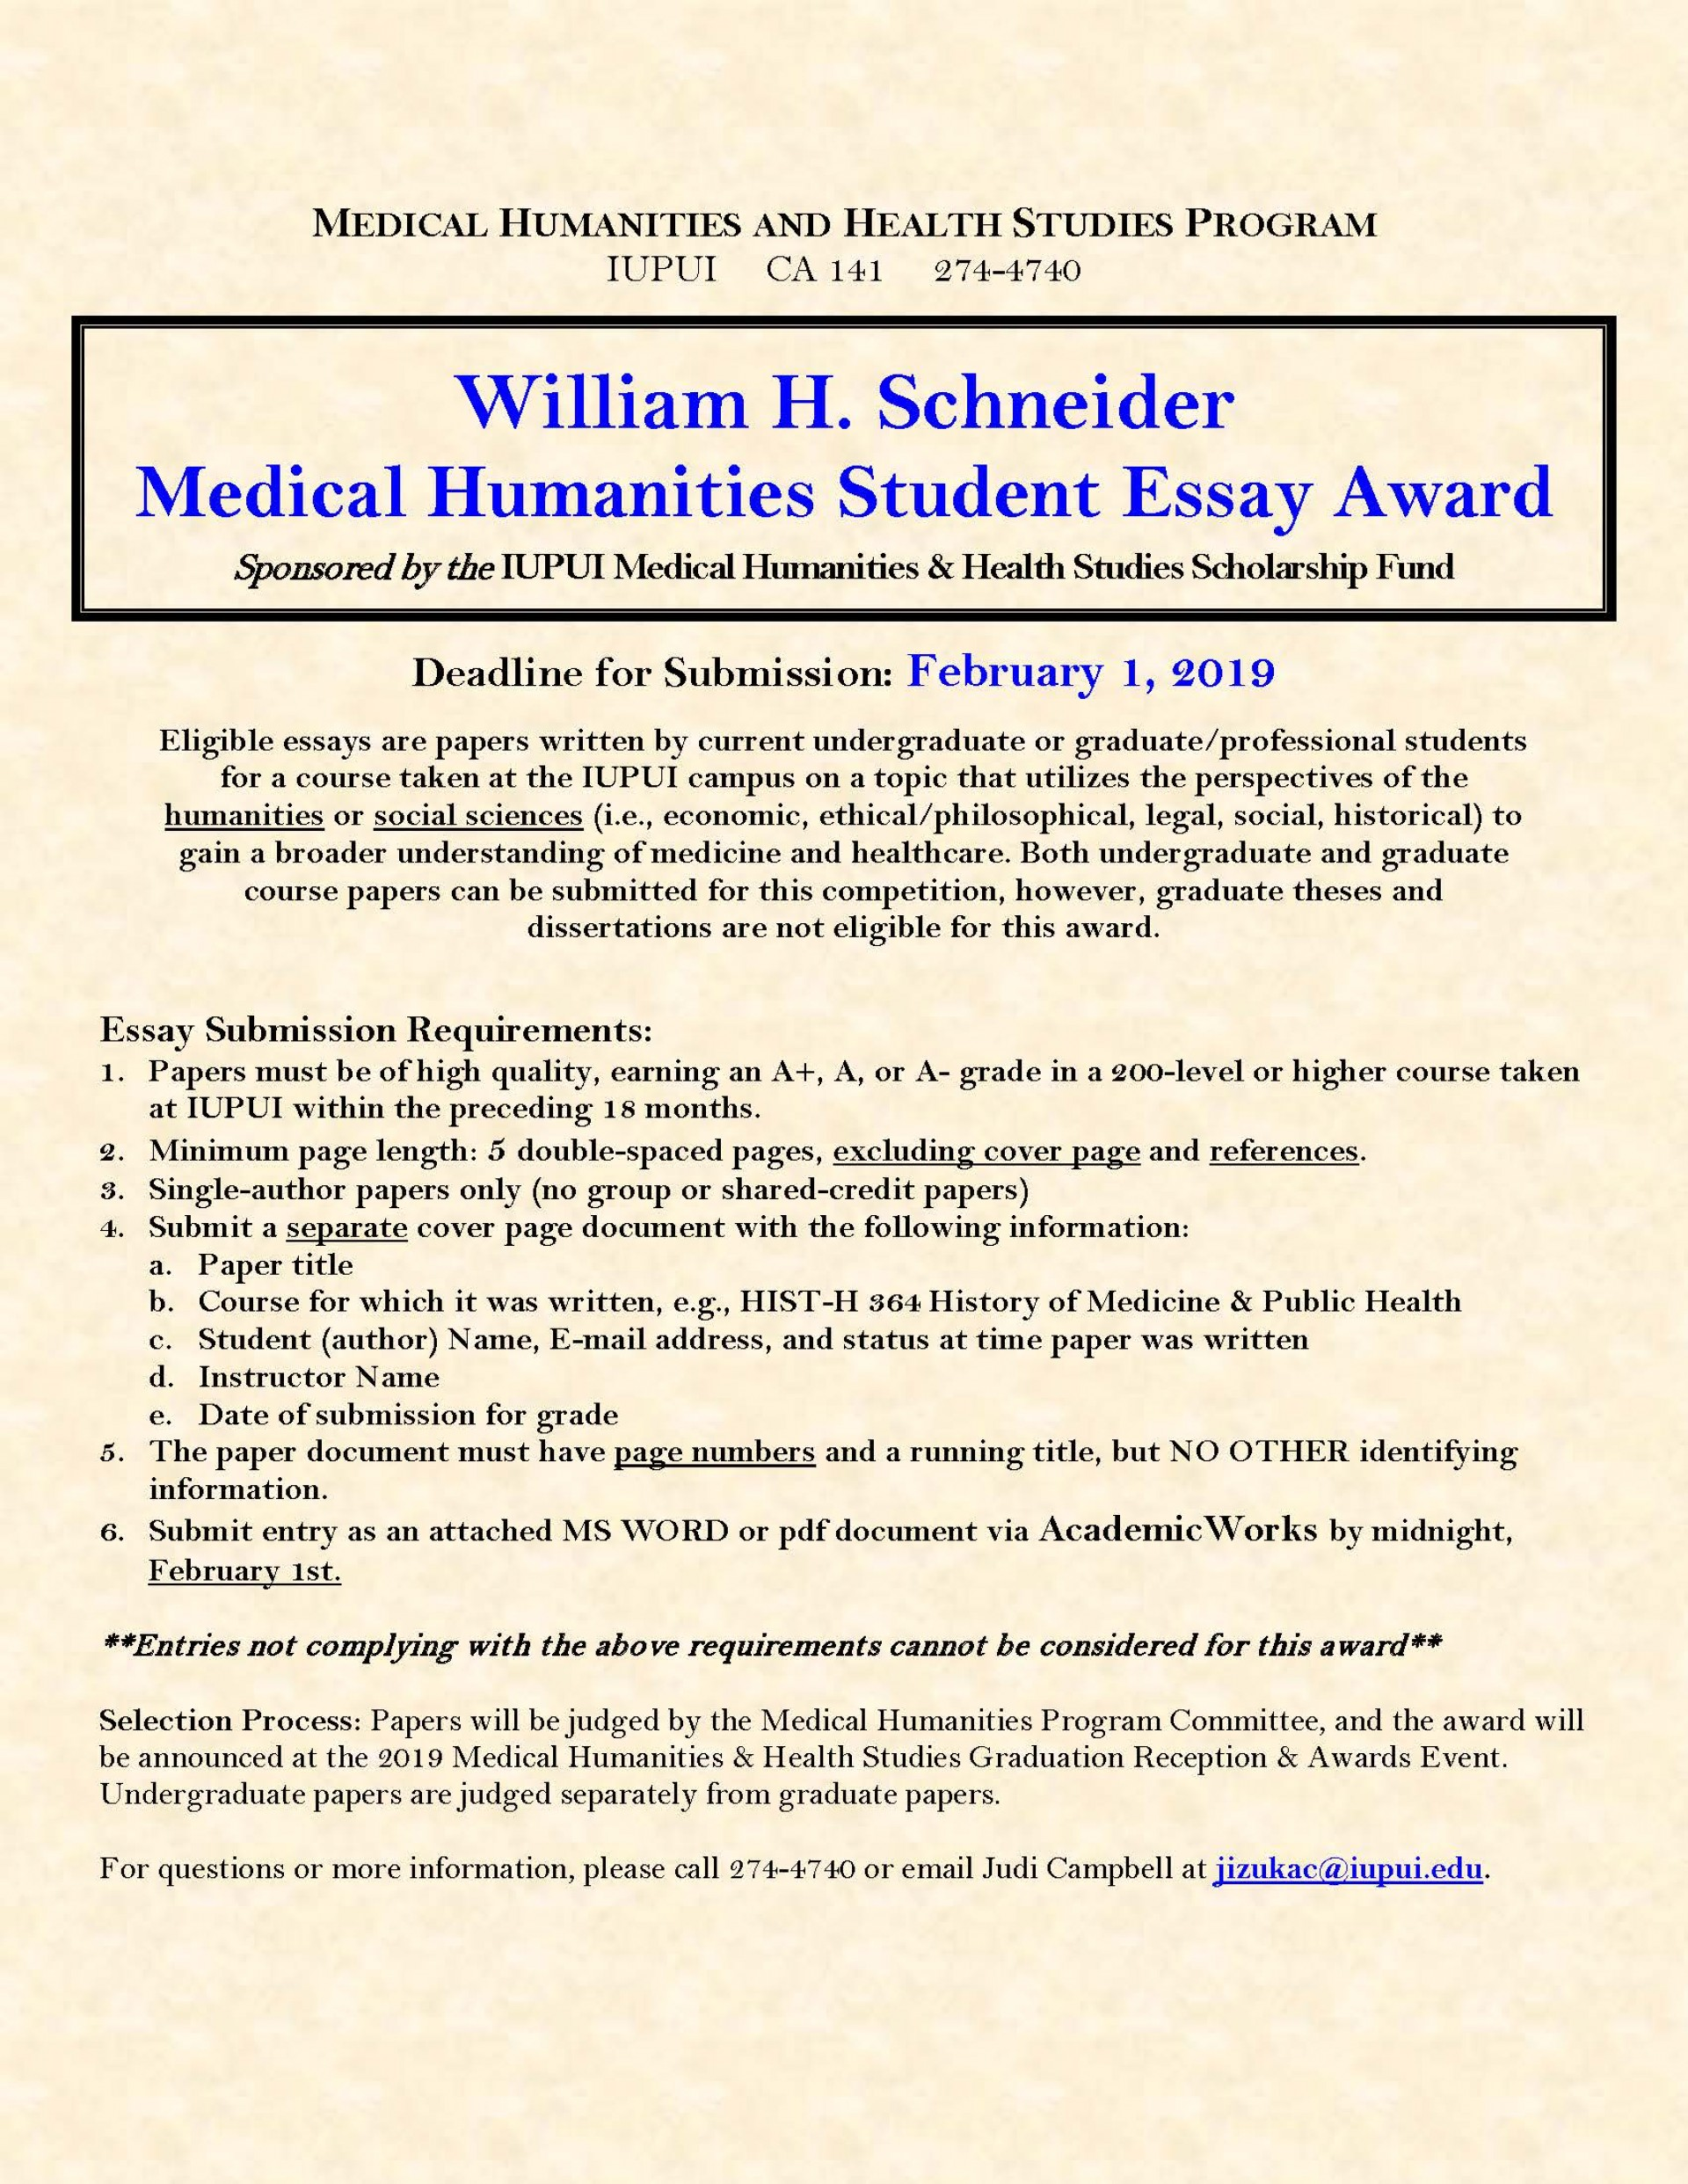 009 Schneider Essay Award Student Awesome Medical Competitions 2017 Database Template 1920